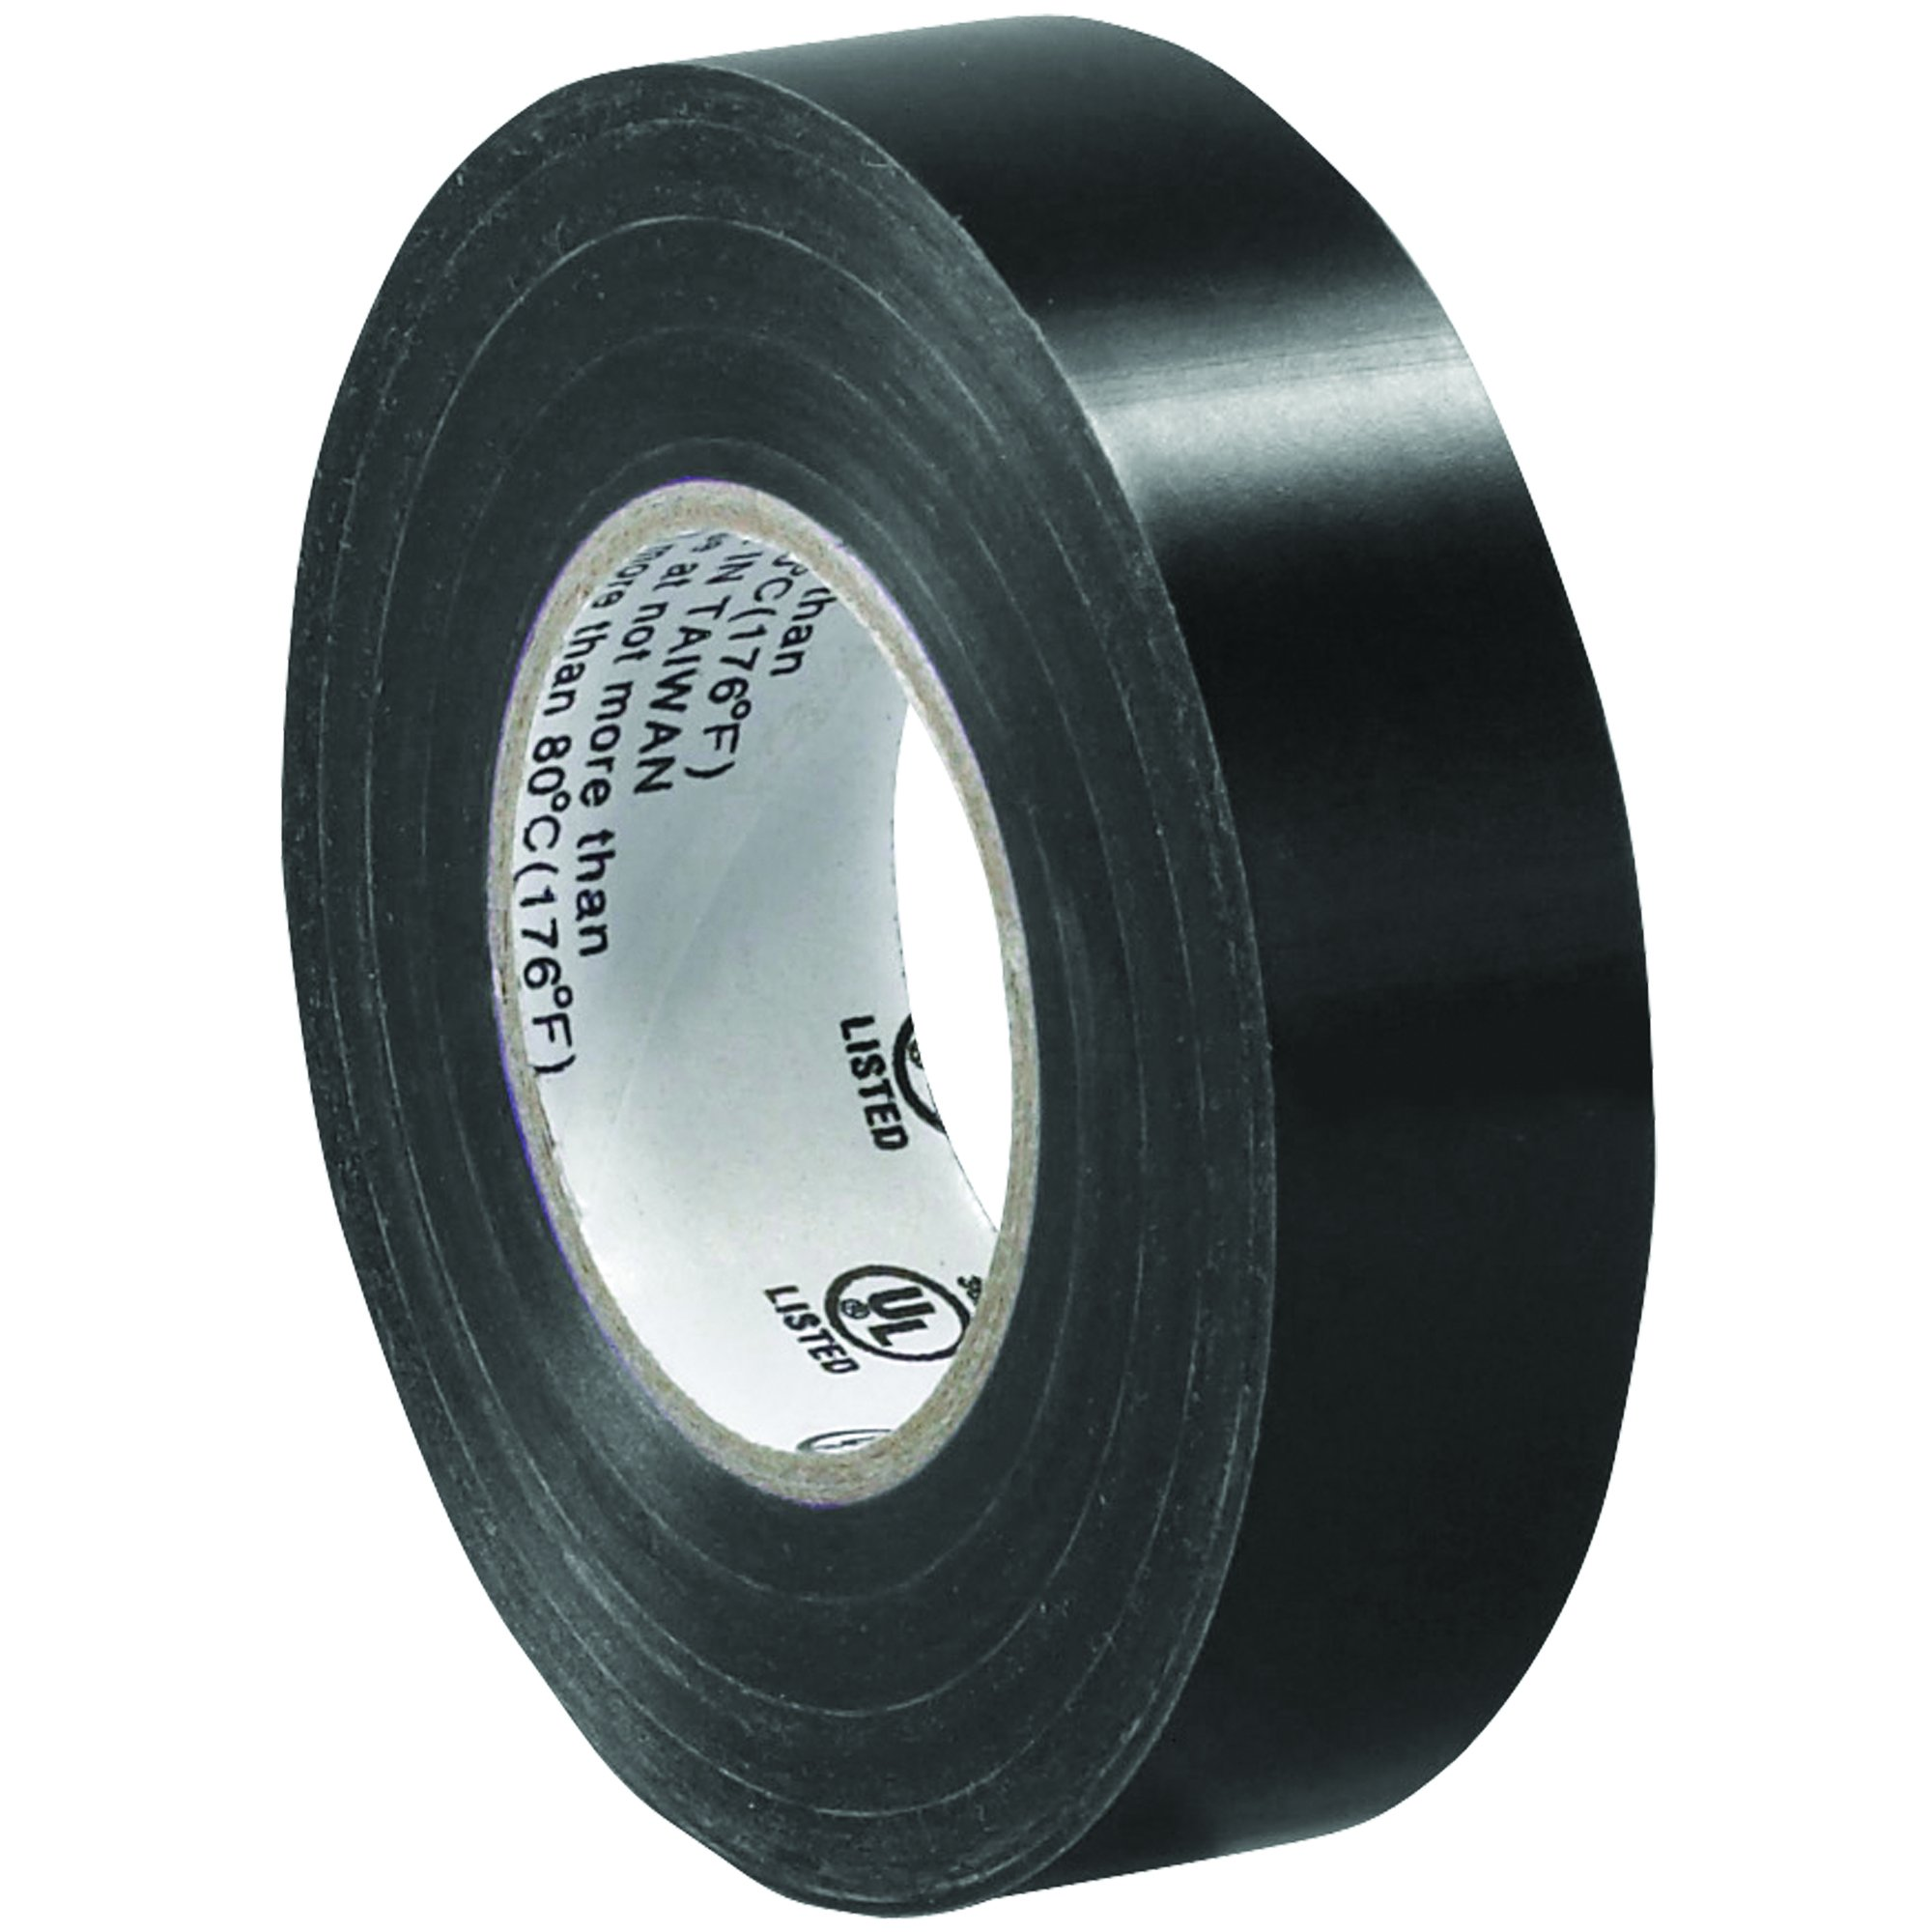 BOX BT96461810PK Black Electrical Tape, 20 yd. Length, 3/4'' (Pack of 10) by Box